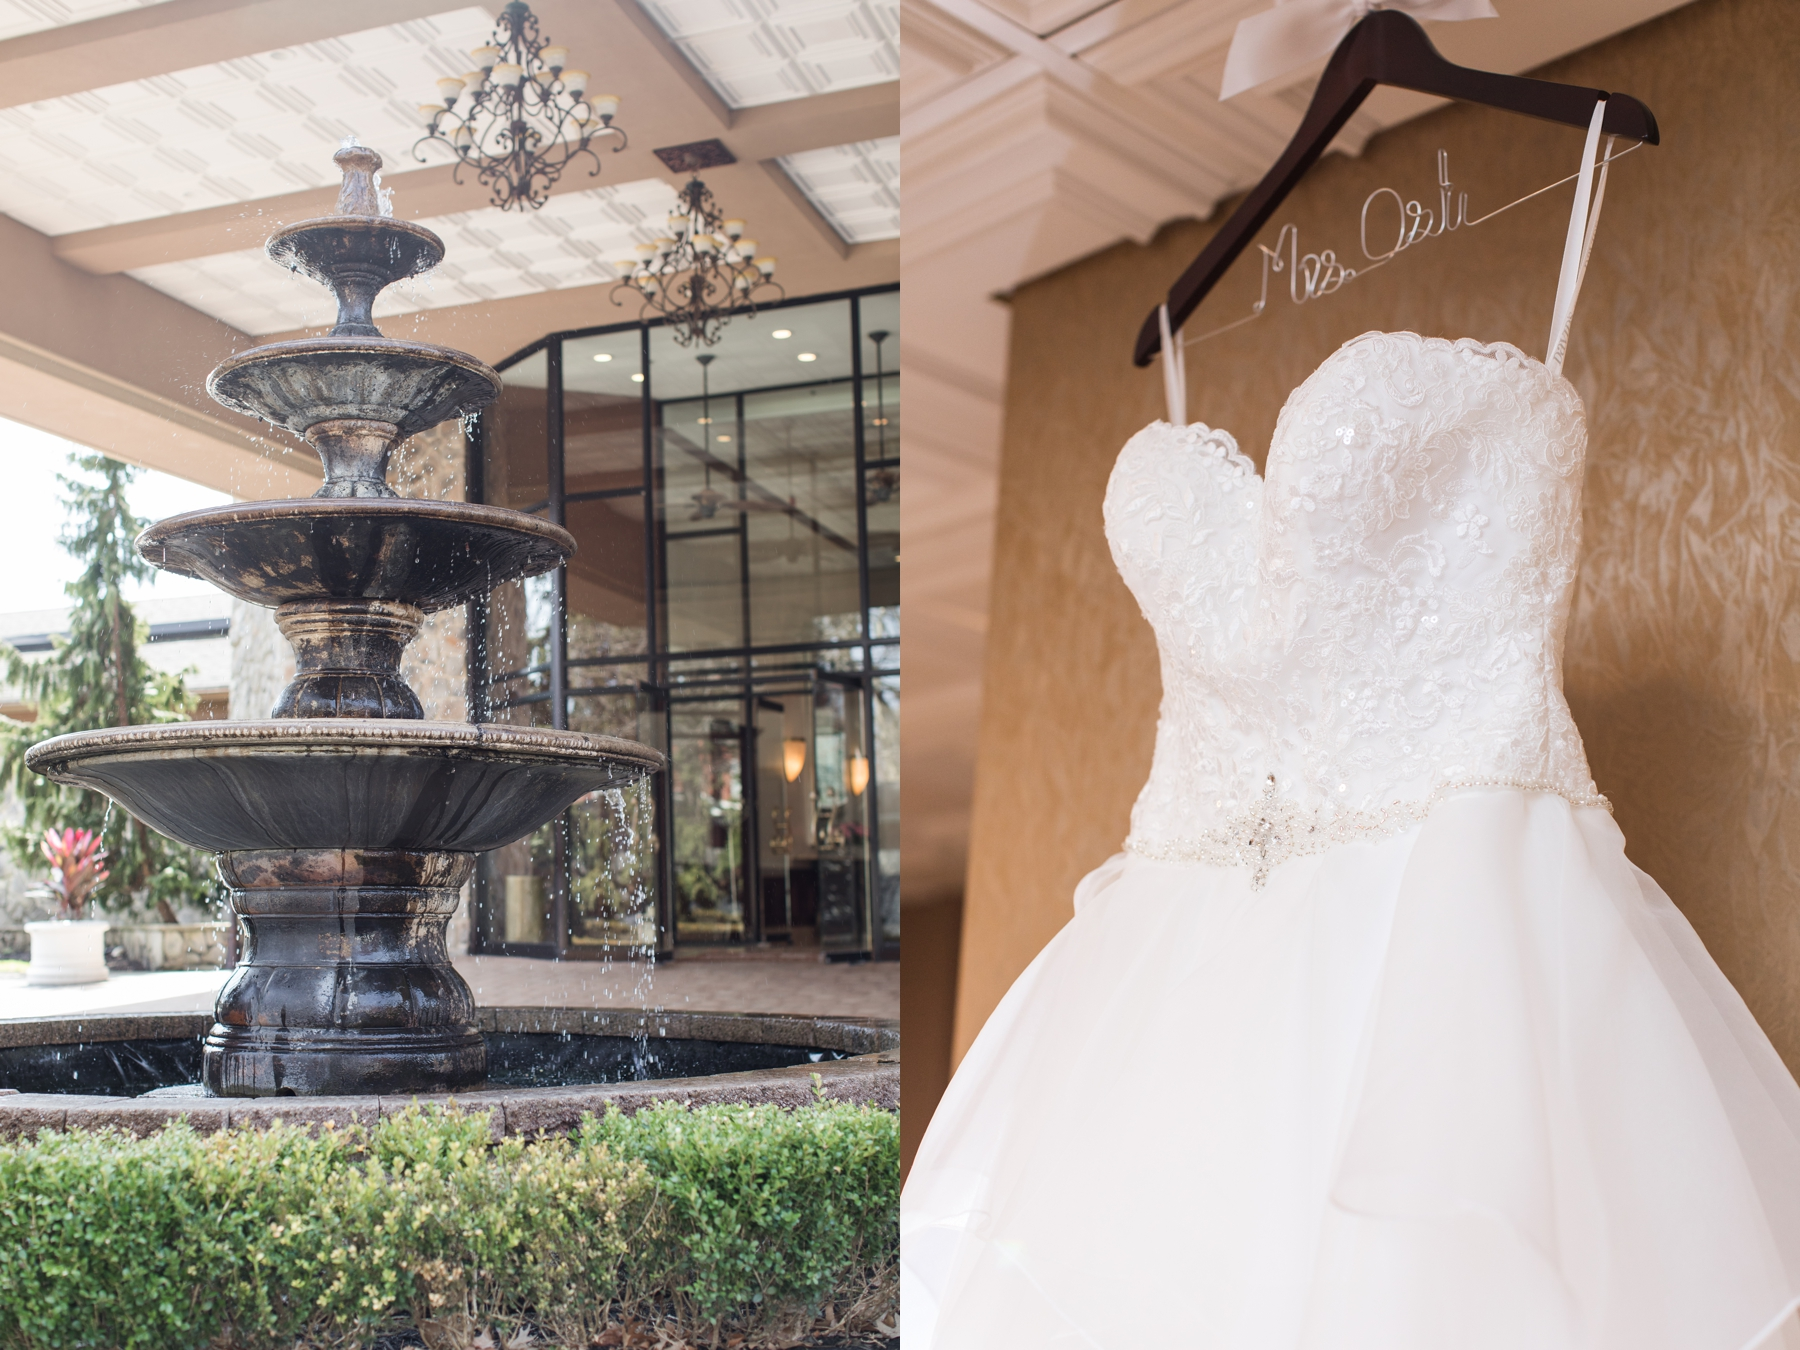 Rebecca + George's Wedding at the South Gate Manor in Freehold, NJ